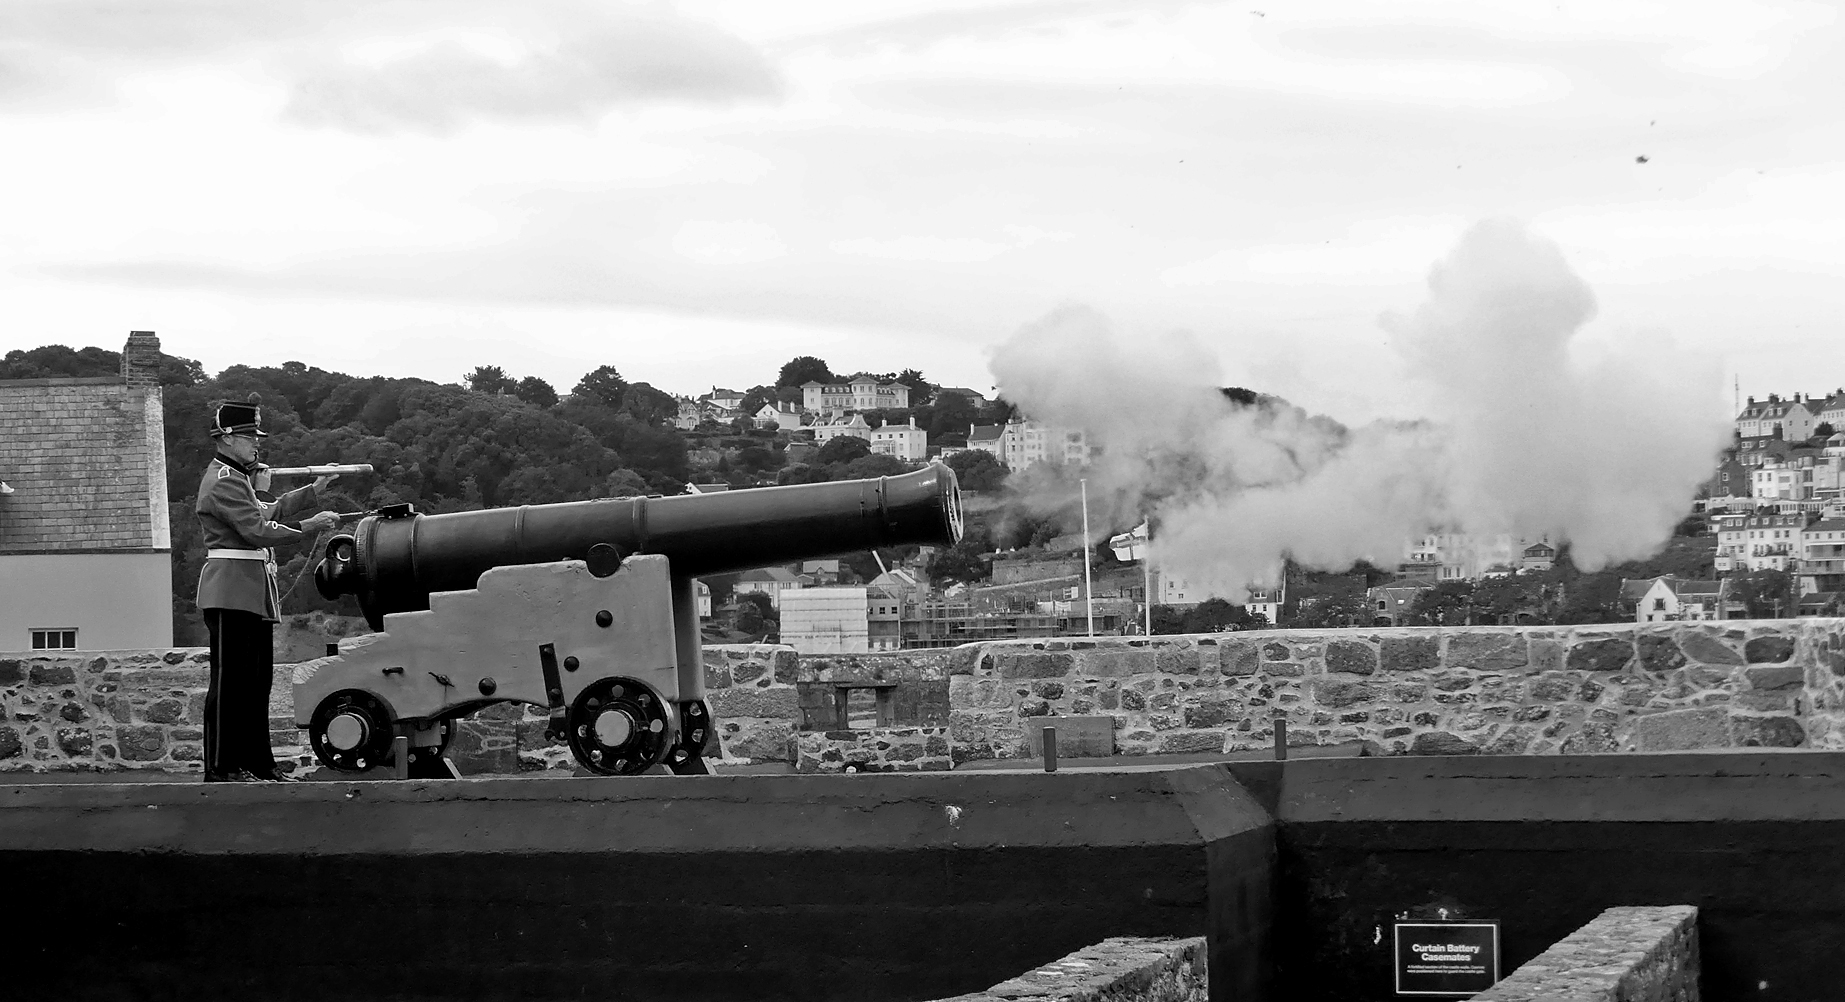 Firing the Noon-day Gun, Castle Cornet, Aug 17